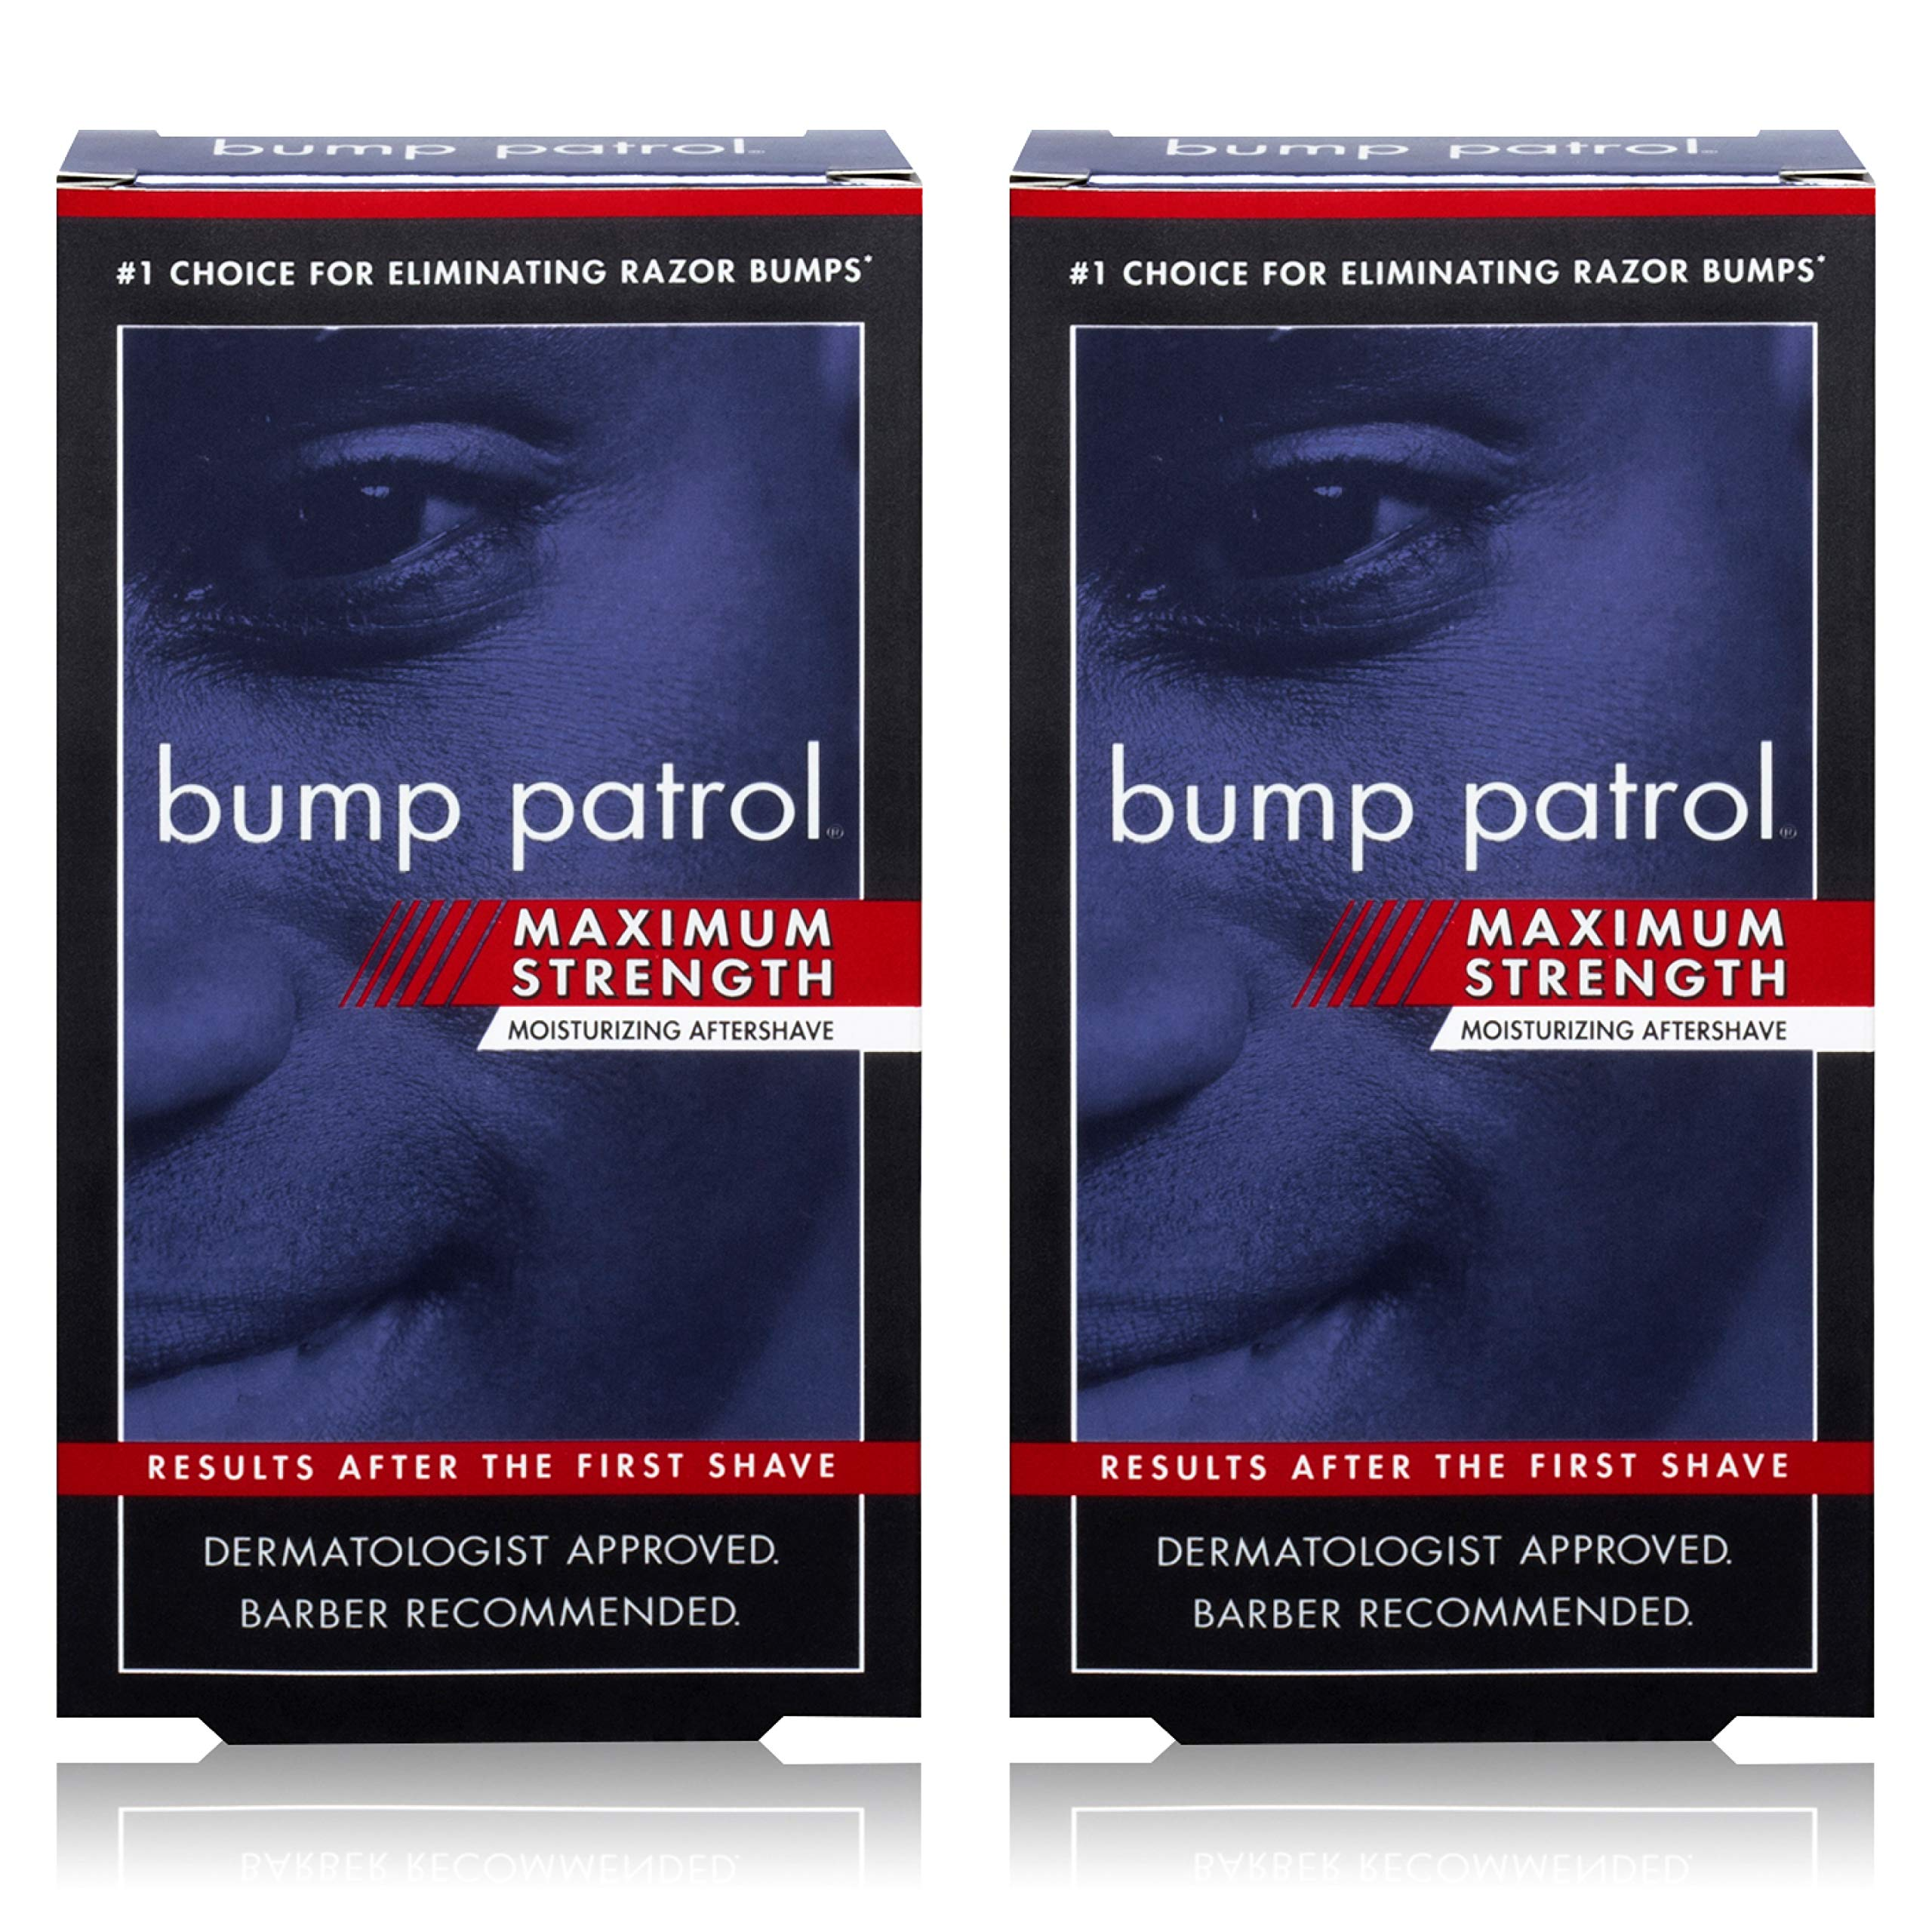 Bump Patrol Maximum Strength Dermatologist Approved Moisturizing Aftershave (2 oz) 2 Pack